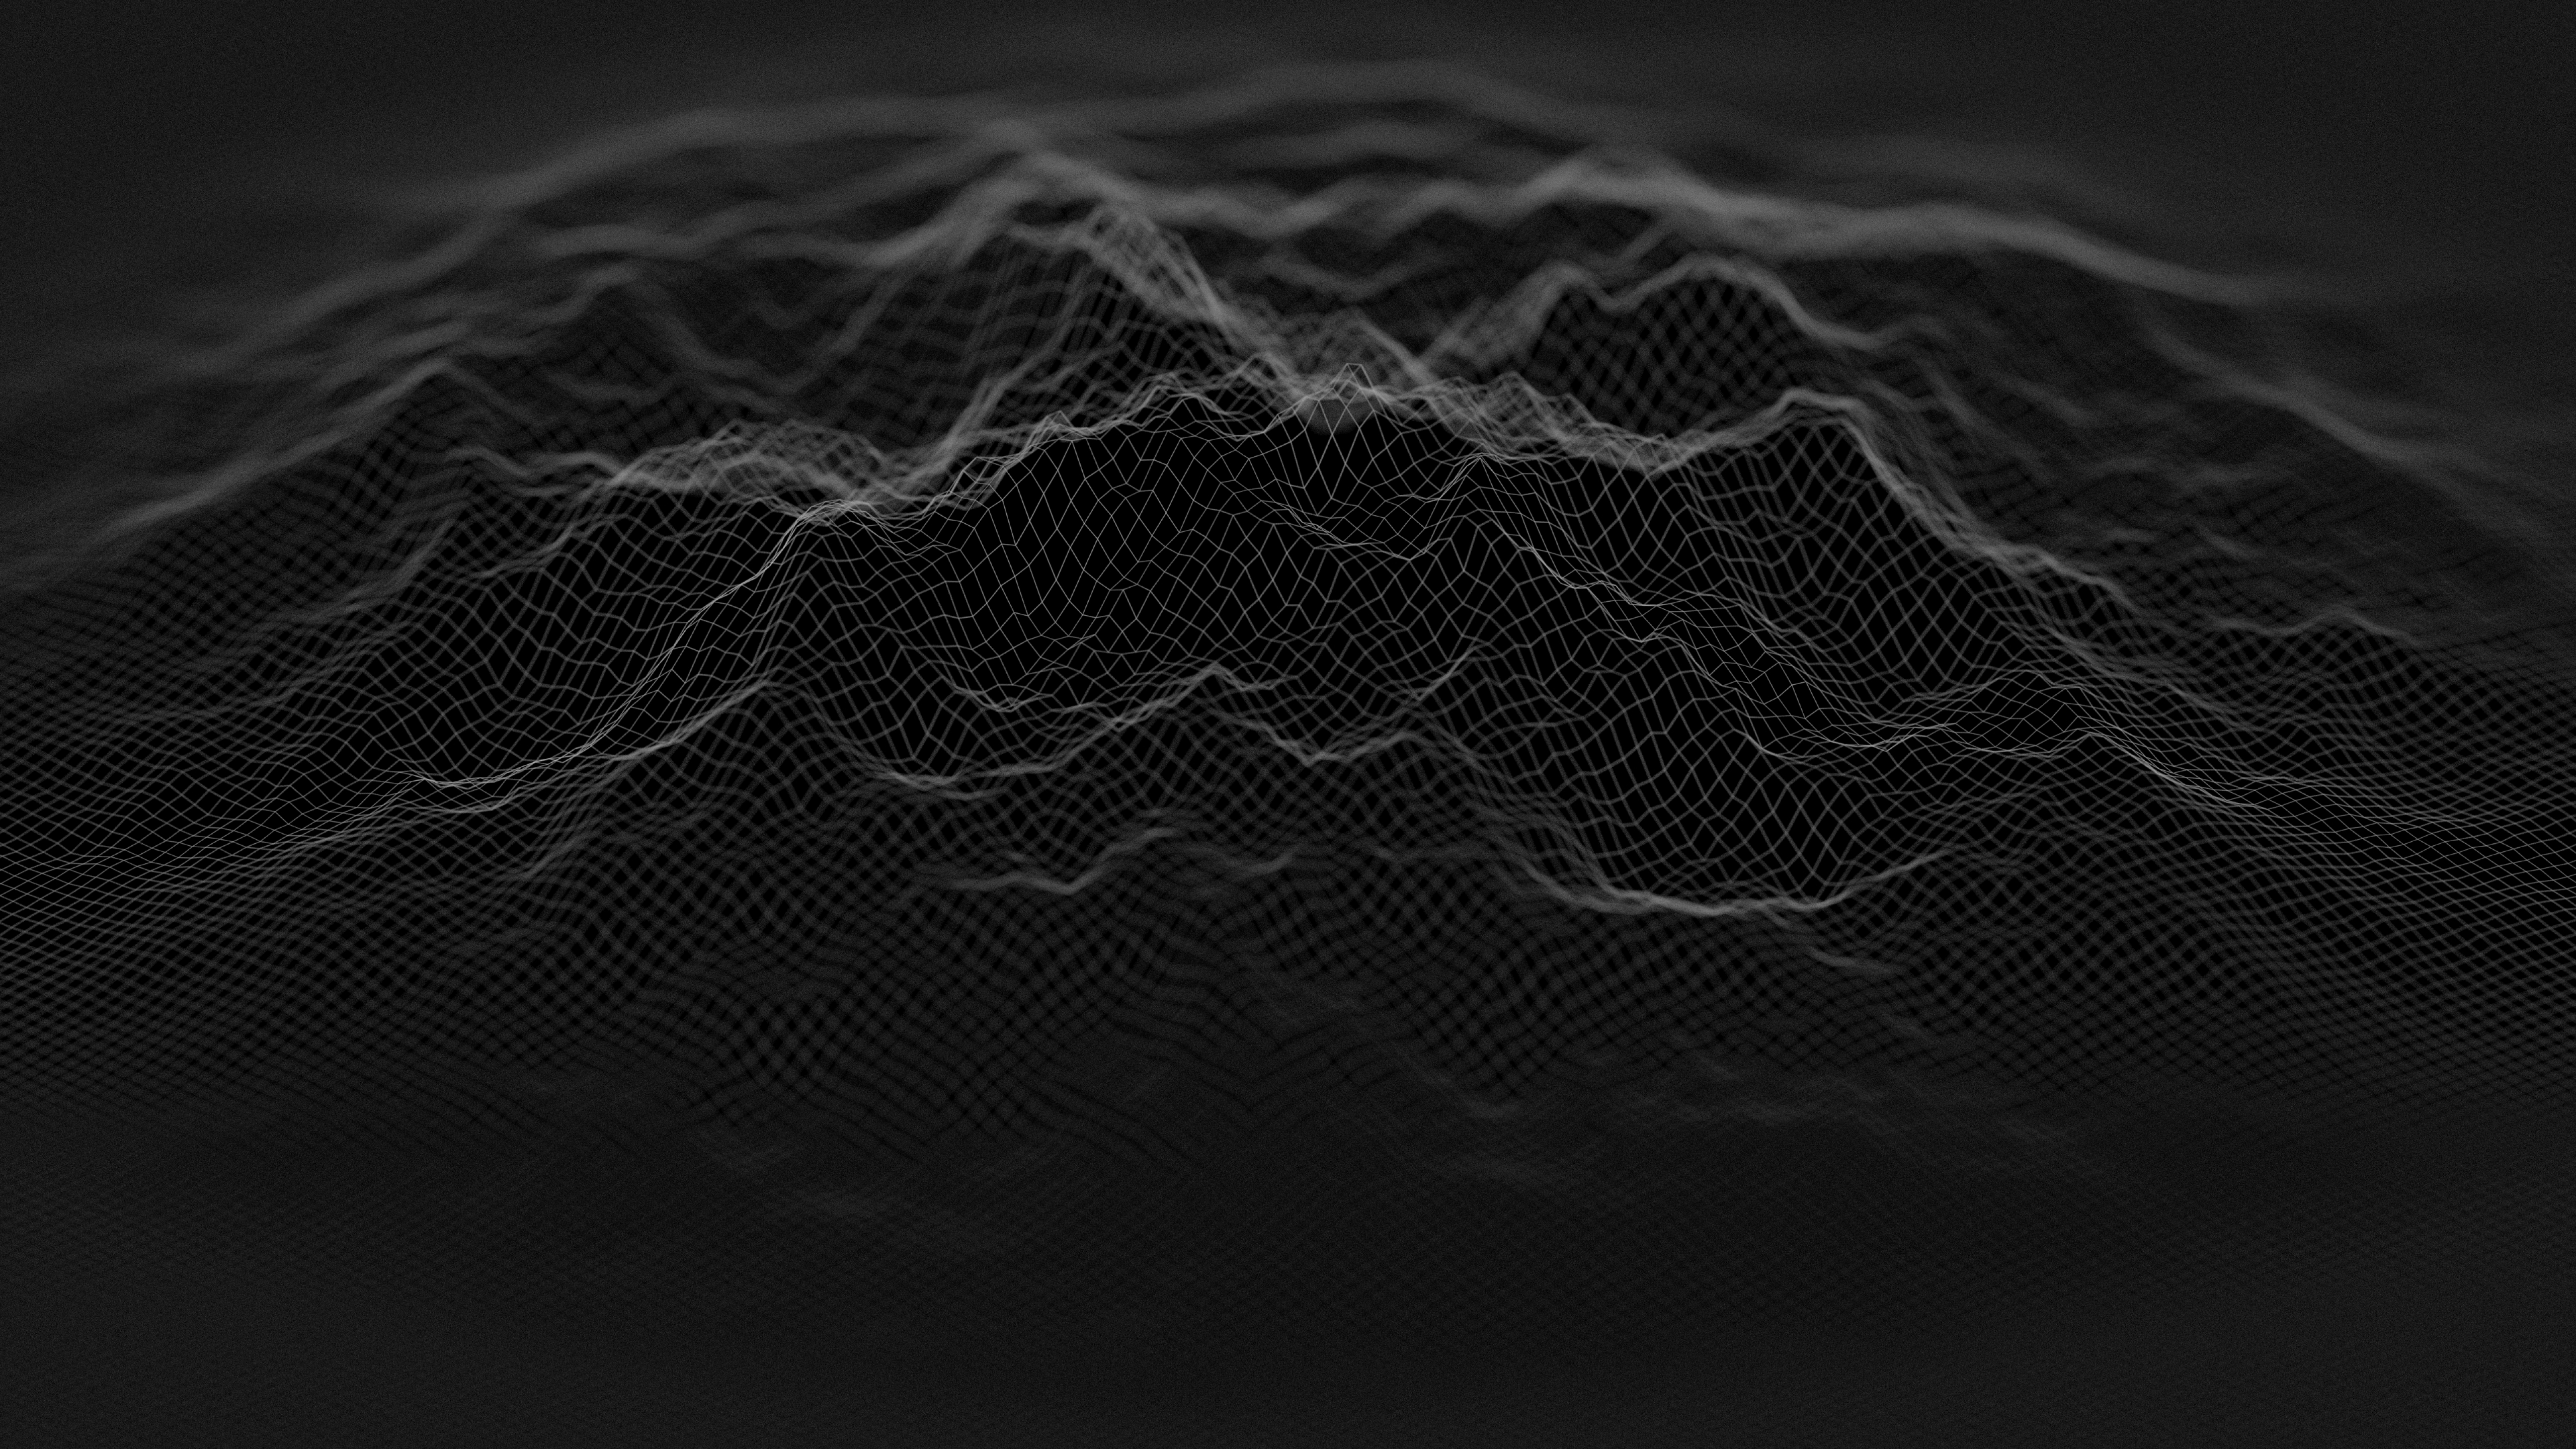 5120x2880 Minimalist Black Digital Blend 5k Wallpaper Hd Abstract 4k Wallpapers Images Photos And Background